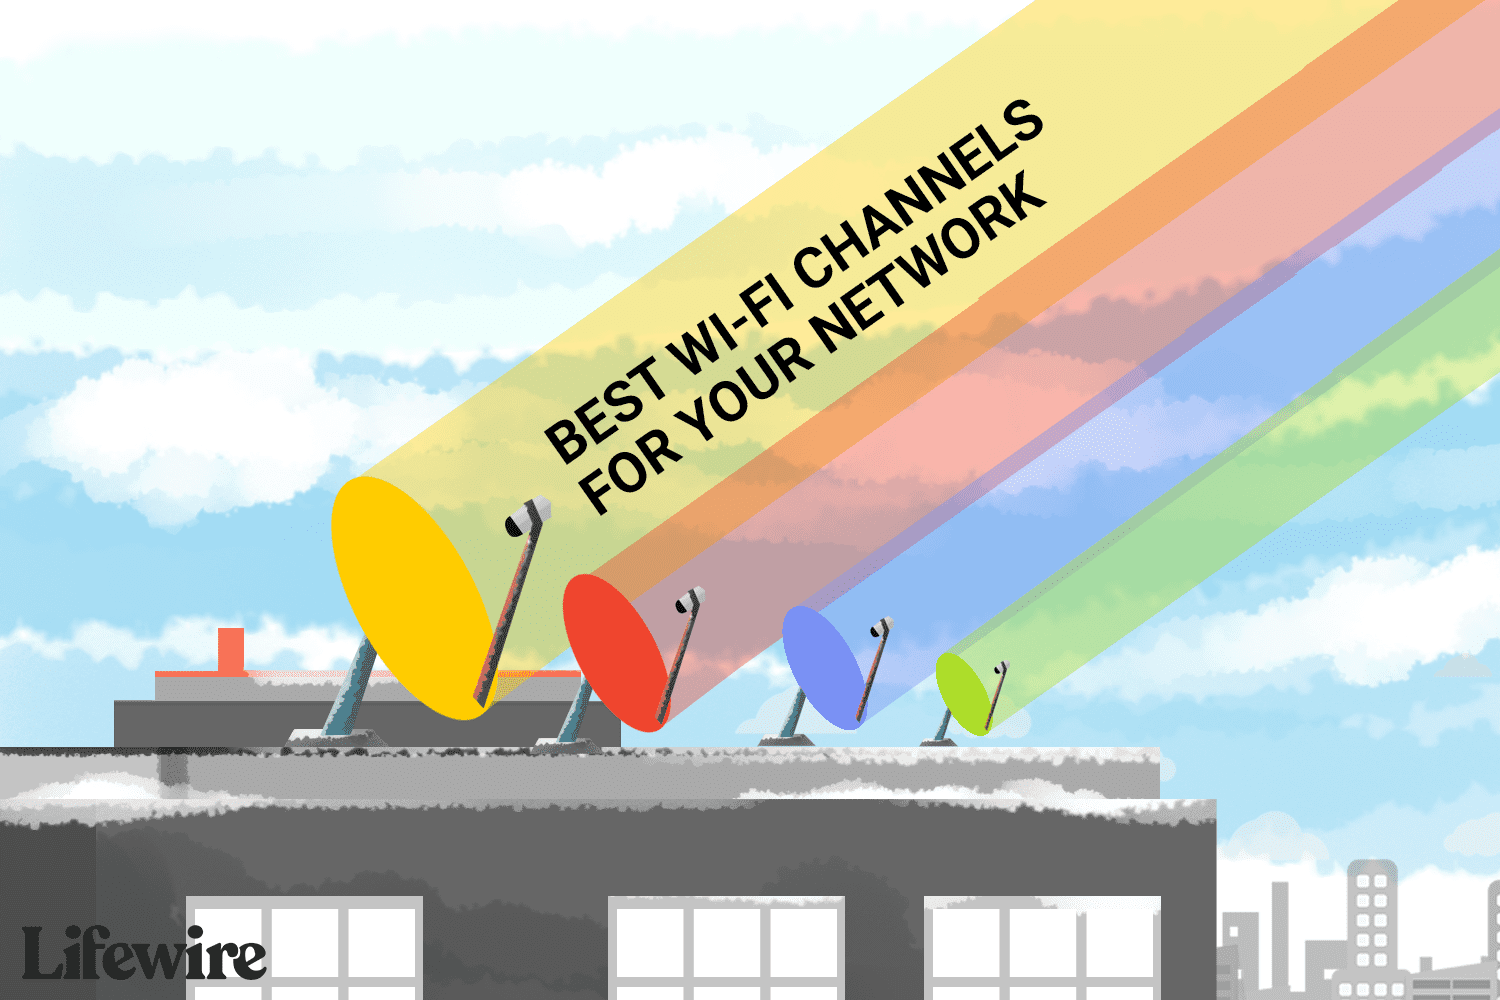 How to Choose the Best Wi-Fi Channel for Your Network